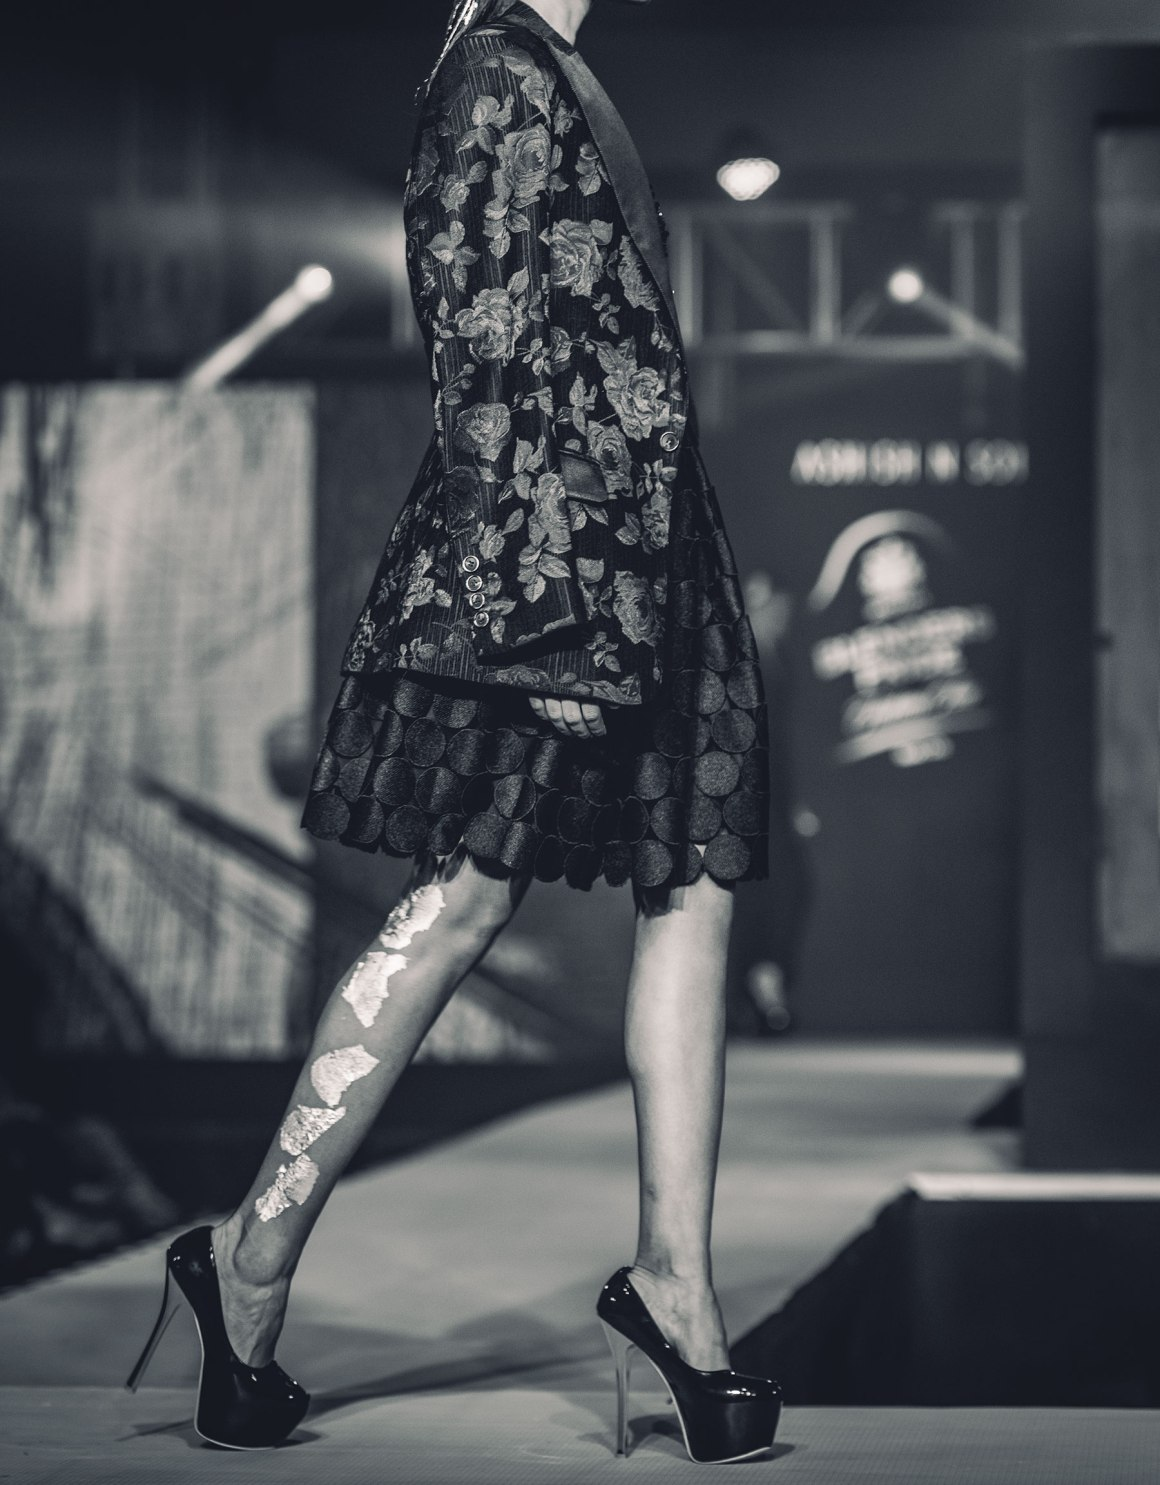 Naina.co, Naina Redhu, Ashish N Soni, Kolkata, Calcutta, Blenders Pride Fashion Tour, BlendersPrideFashionTour, NAINAxBPFT, BPFT2018, BPFT, Pernod Ricard, Black and White, Monochromatic, Monochrome, Ashish Soni, ITC Sonar Banlga, West Bengal, MadeInIndia, EyesForFashion, Client Photography Showcase, Professional Photography, Photo Story, Experience Collector, Runway, Models, MyIdentityMyPride, My Identity My Pride, MyStyleMyPride, My Style My Pride, Sushmita Sen, Rajiv Makhni, Whisky, Whiskey, Blenders Pride, Preferred Professionals, Salt XP, Sanea, Aishwarya Sushmita, Silver Hair, Fashion Installation, Bar, Professional Photographer India, Fashion Photographer India, Lifestyle Photographer India, Lifestyle Photographer, Behind The Scenes, Backstage